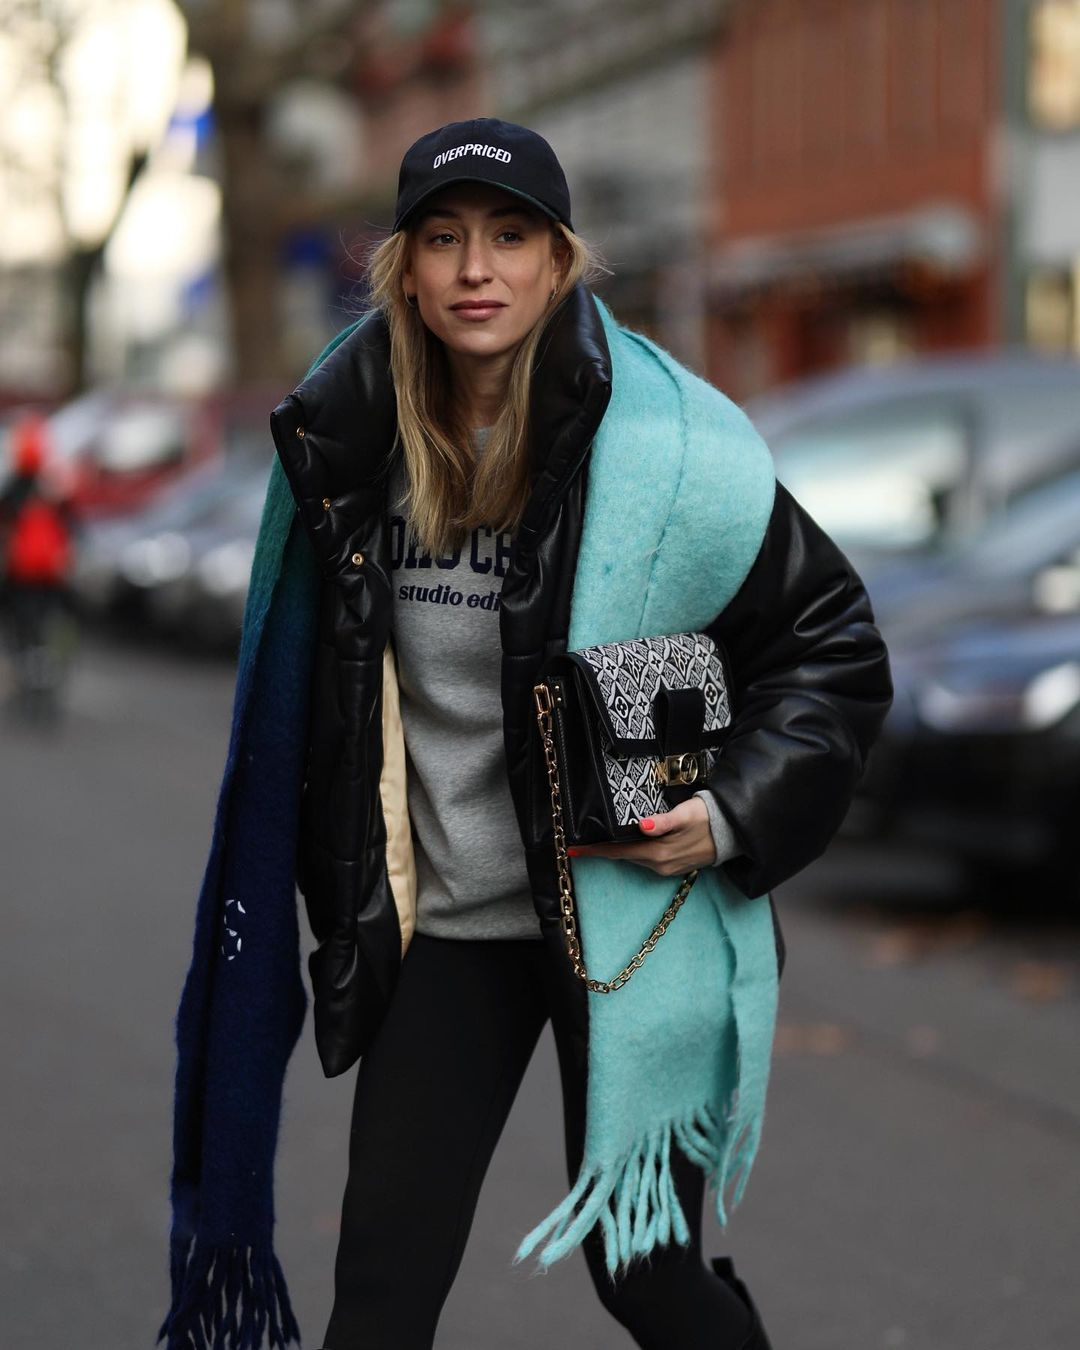 sonia-lyson-acne-studios-turquoise-kelow-dye-fringed-scarf-the-outnet-sale-instagram